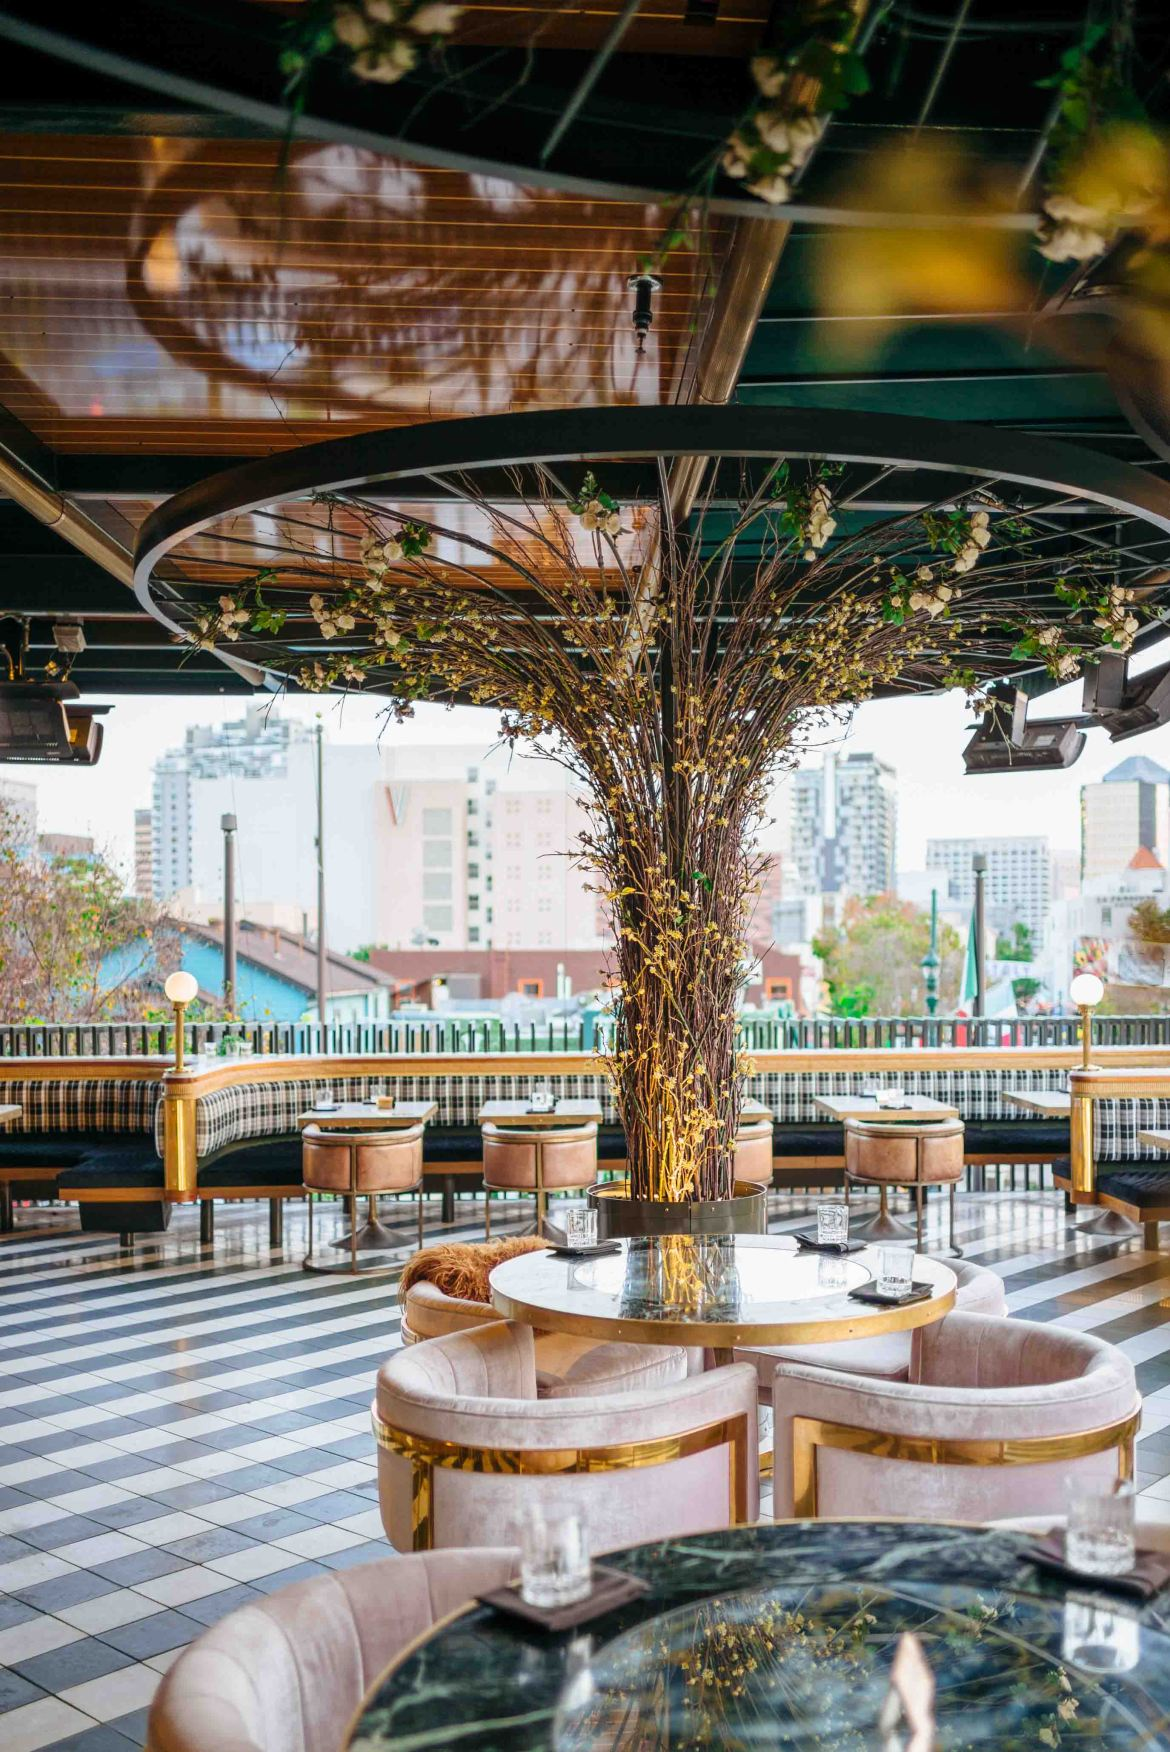 over-the-top steakhouse decor at Born and Raised in San Diego's Little Italy rooftop bar